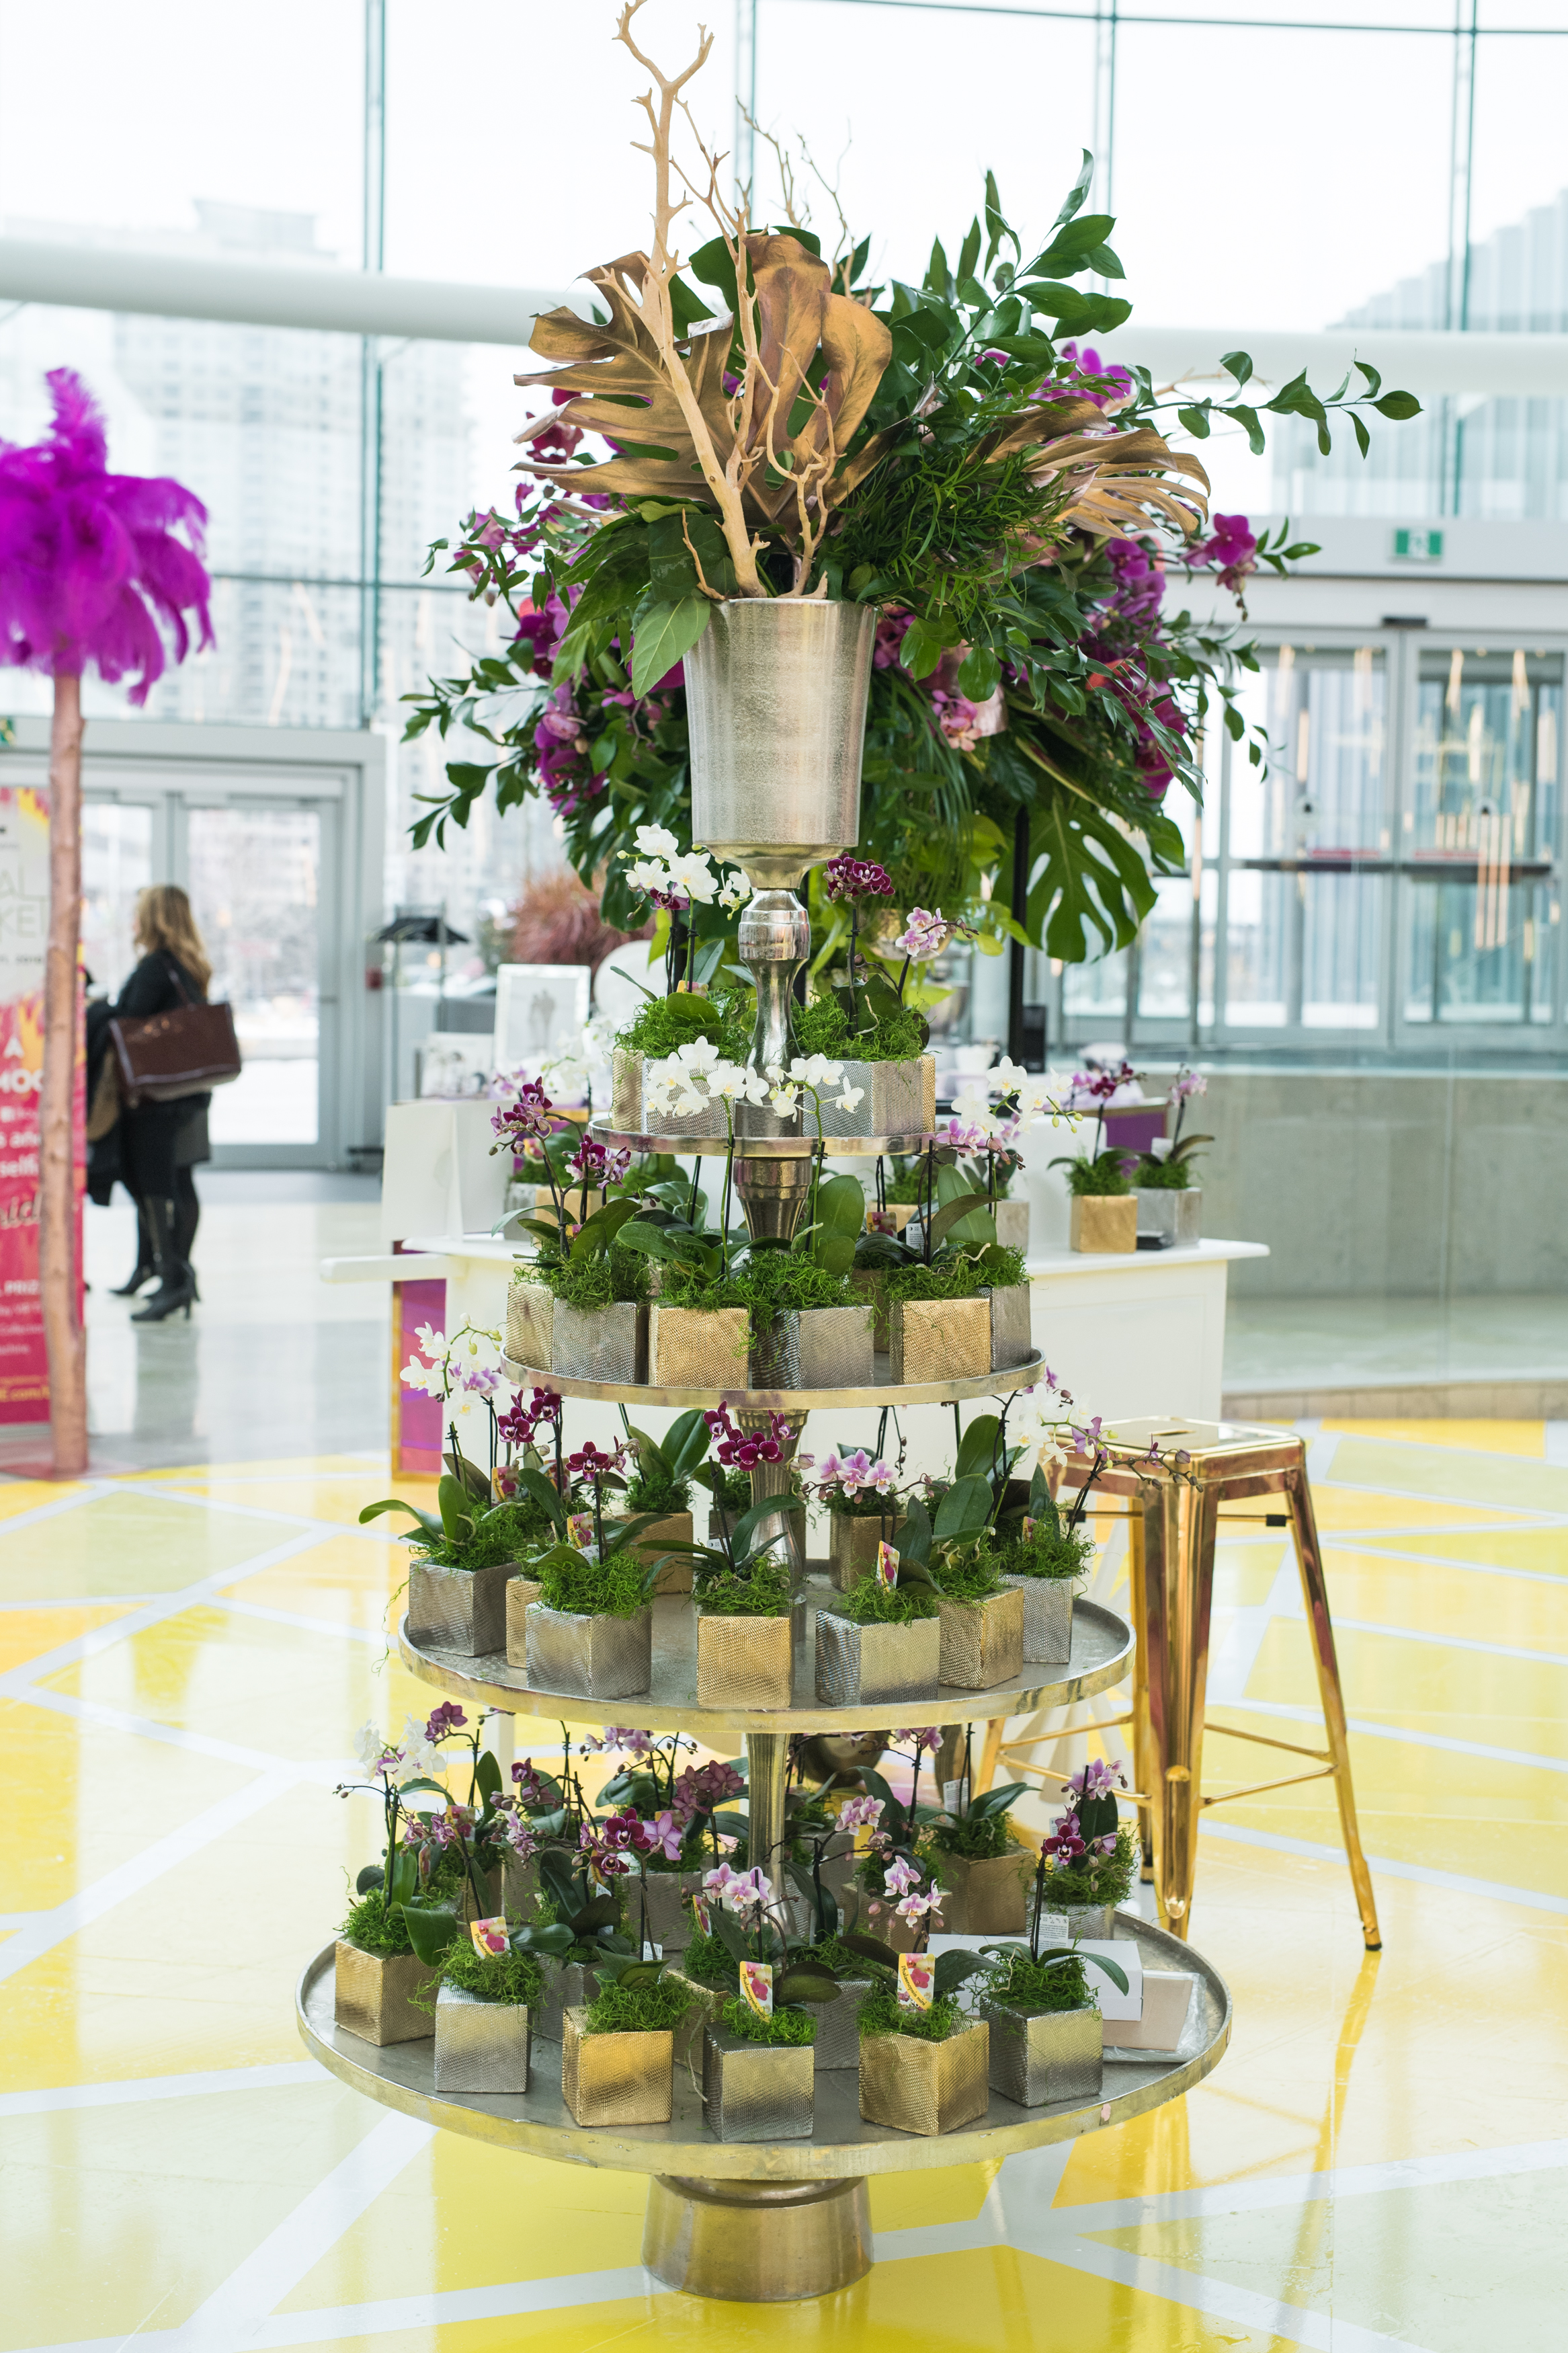 August In Bloom - Plants - #SQ1Bridal (Square One Shopping Centre)